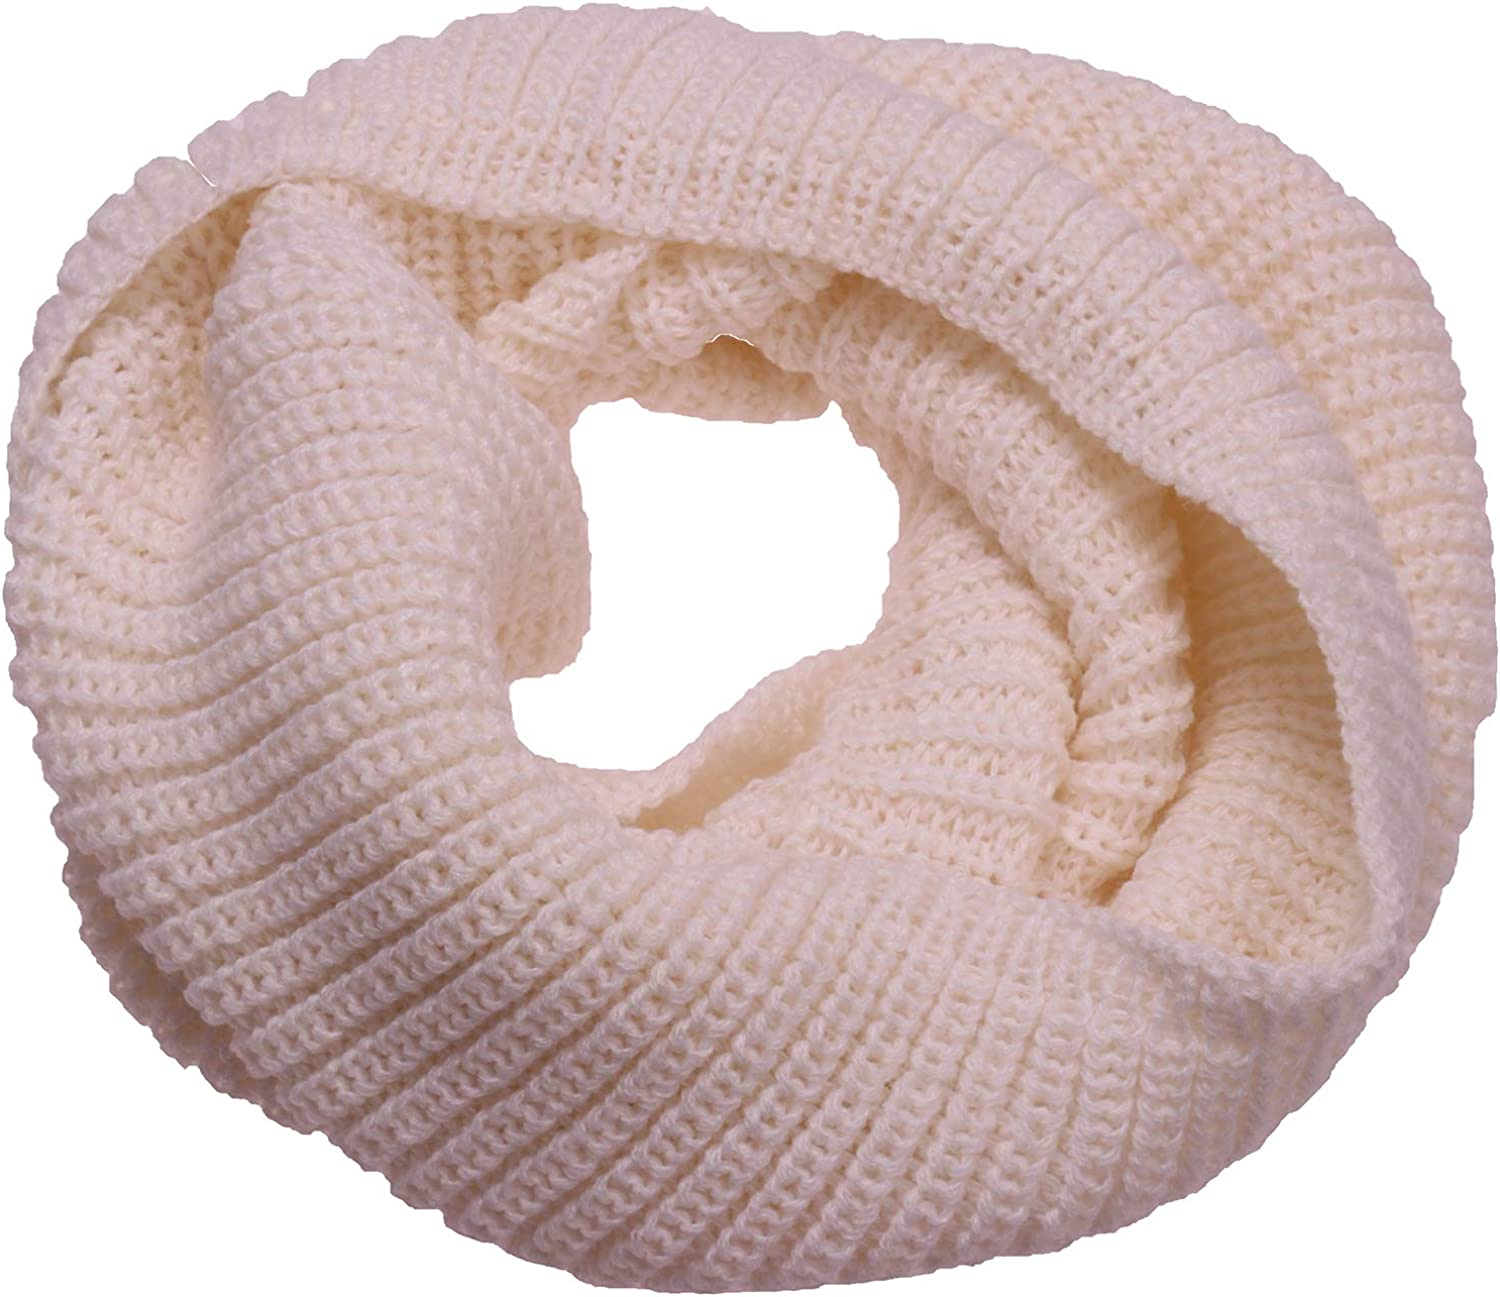 ANCHOVY Knit Infinity Scarf, Winter Warm Ribbed Circle Loop Scarf Neck Warmer S005